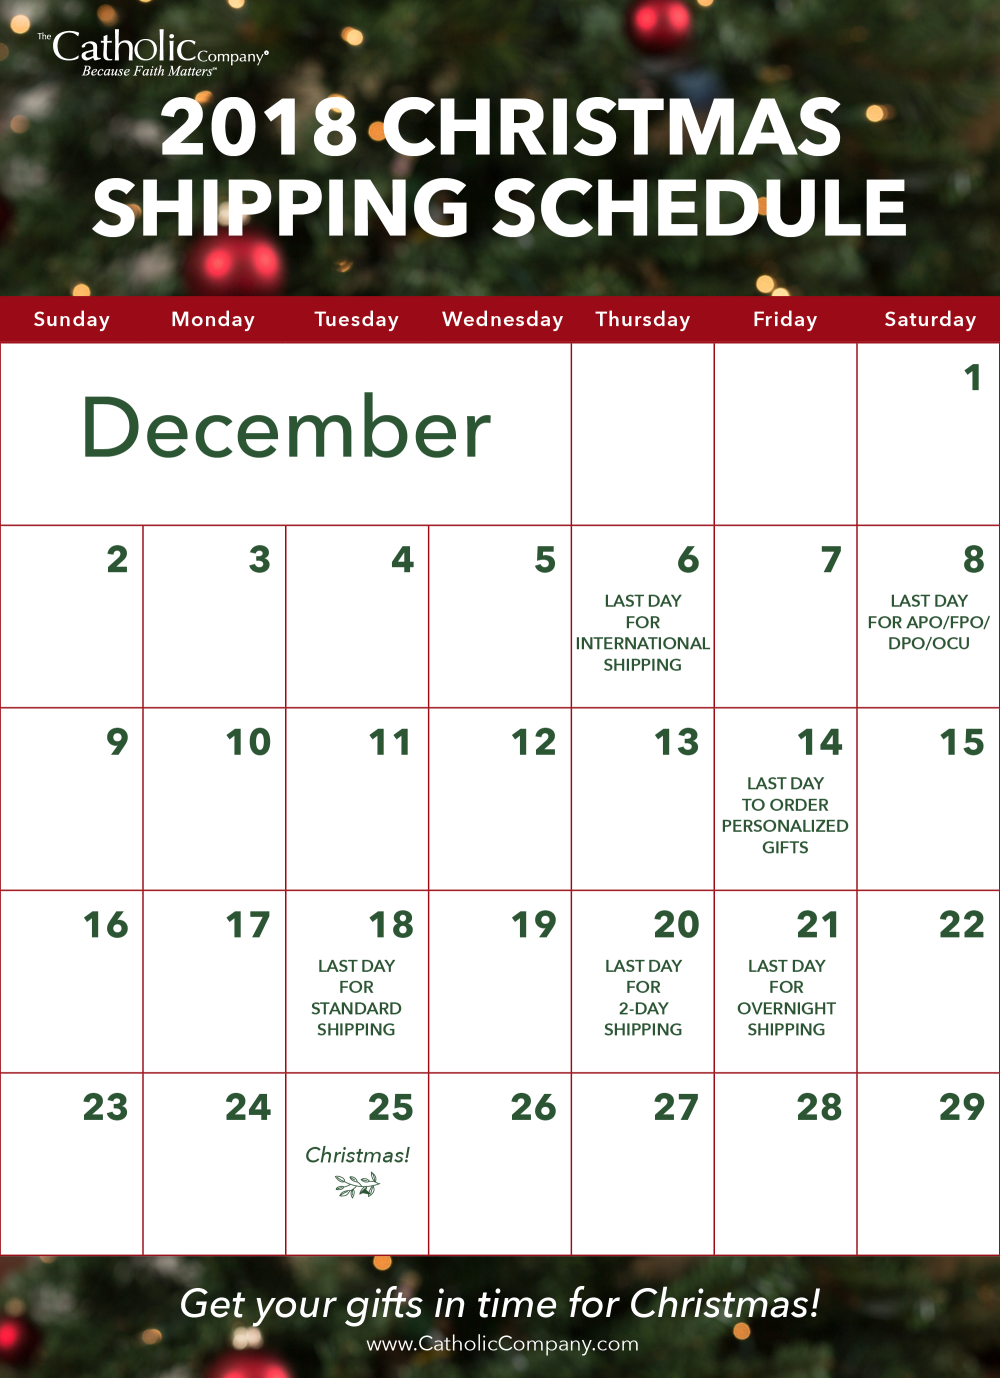 2018 Christmas Shipping Schedule at CatholicCompany.com